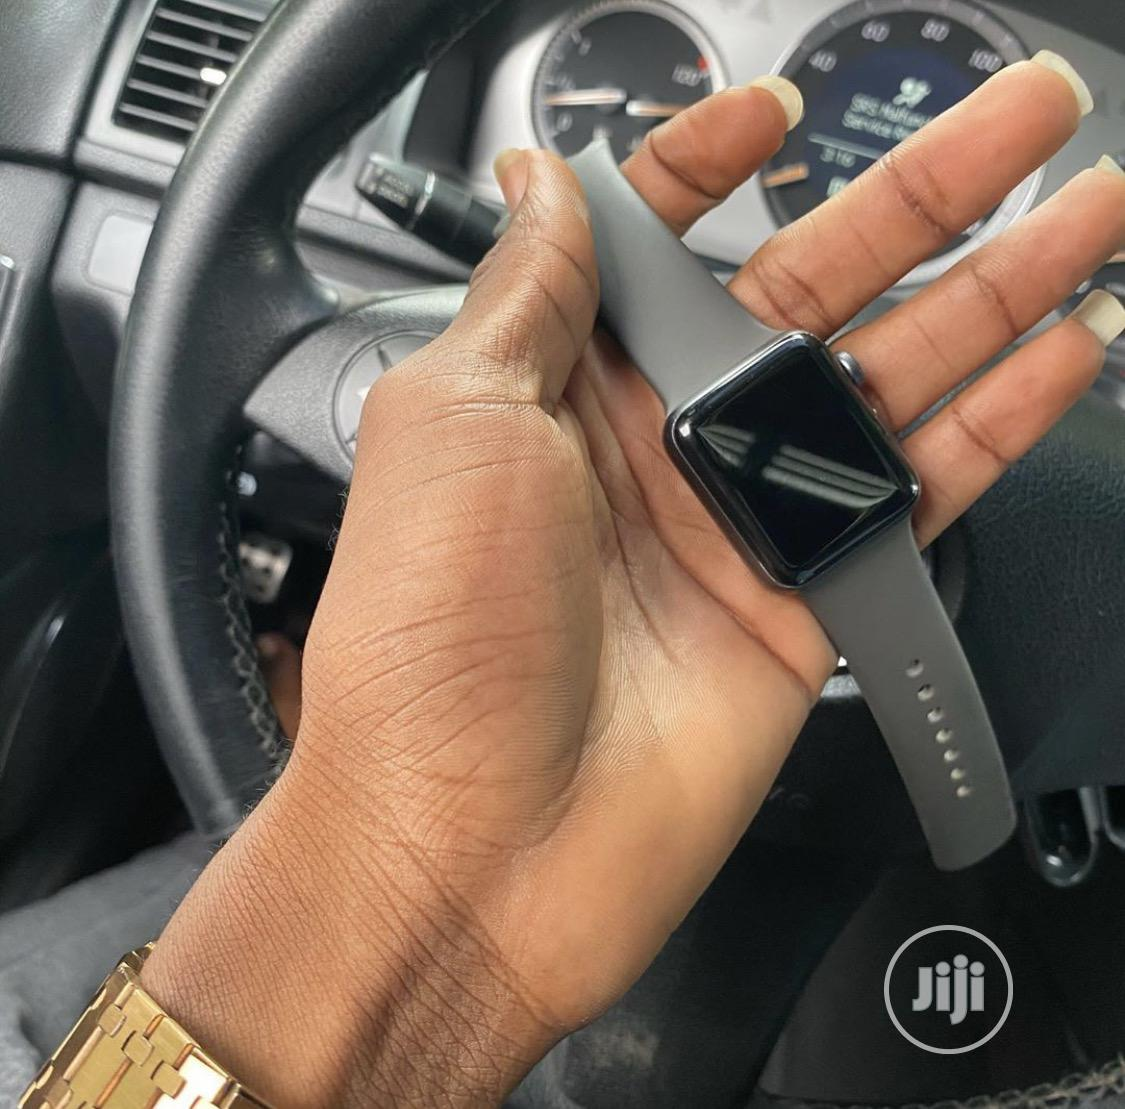 Iwatch Series 4 44mm Gps+Cellular   Smart Watches & Trackers for sale in Ikeja, Lagos State, Nigeria